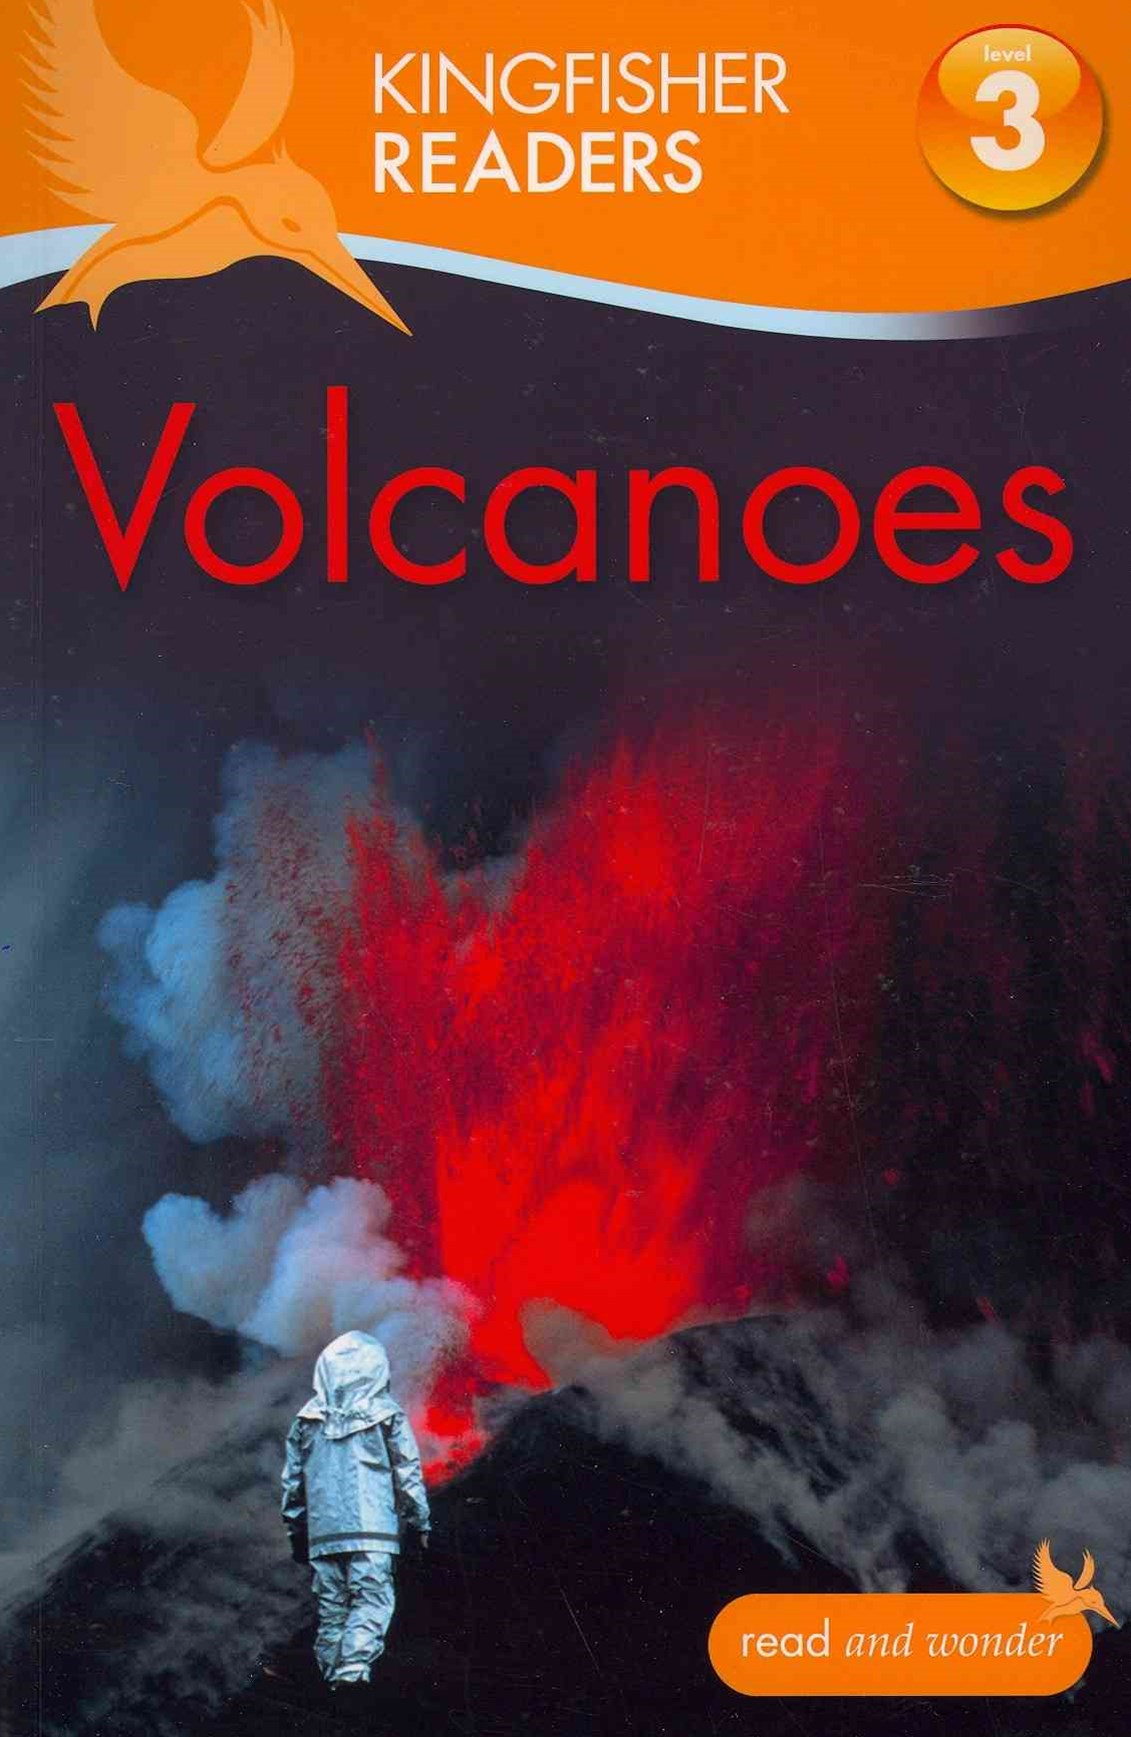 Volcanoes - Kingfisher Readers